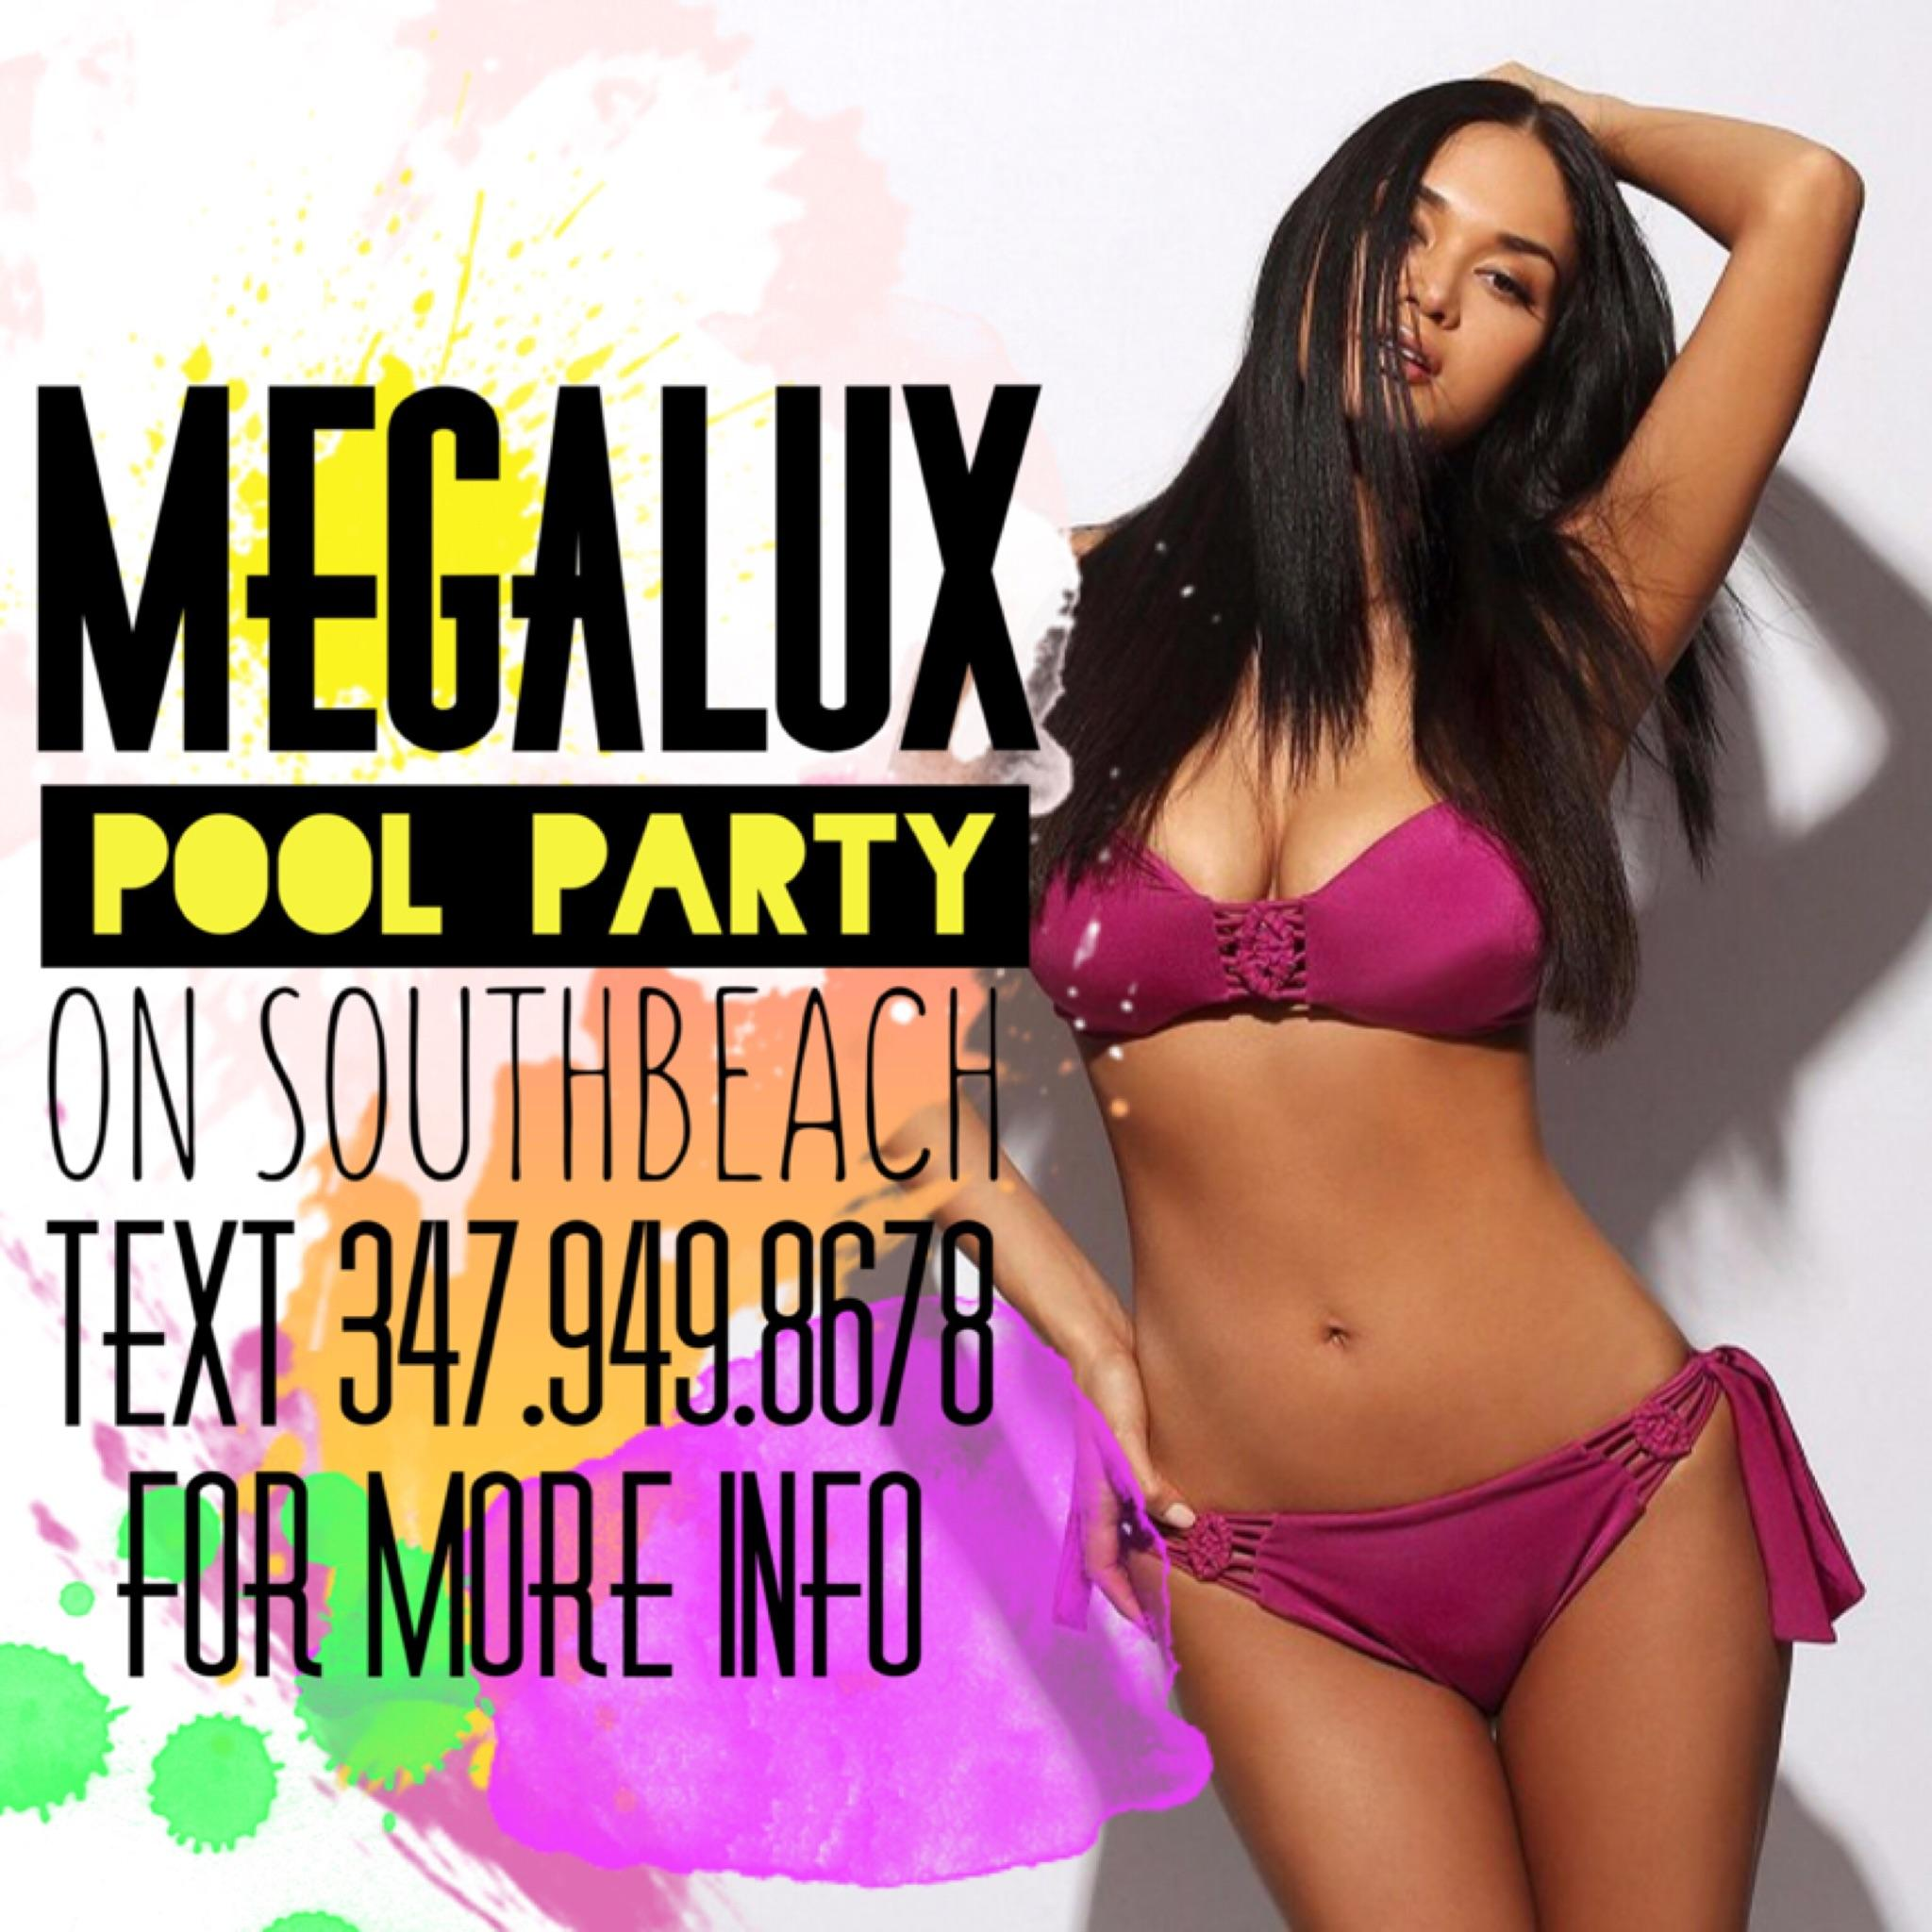 MegaLux Day Life Brunch Buffet & Pool Party. MegaLux Day Life Brunch Buffet & Pool Party